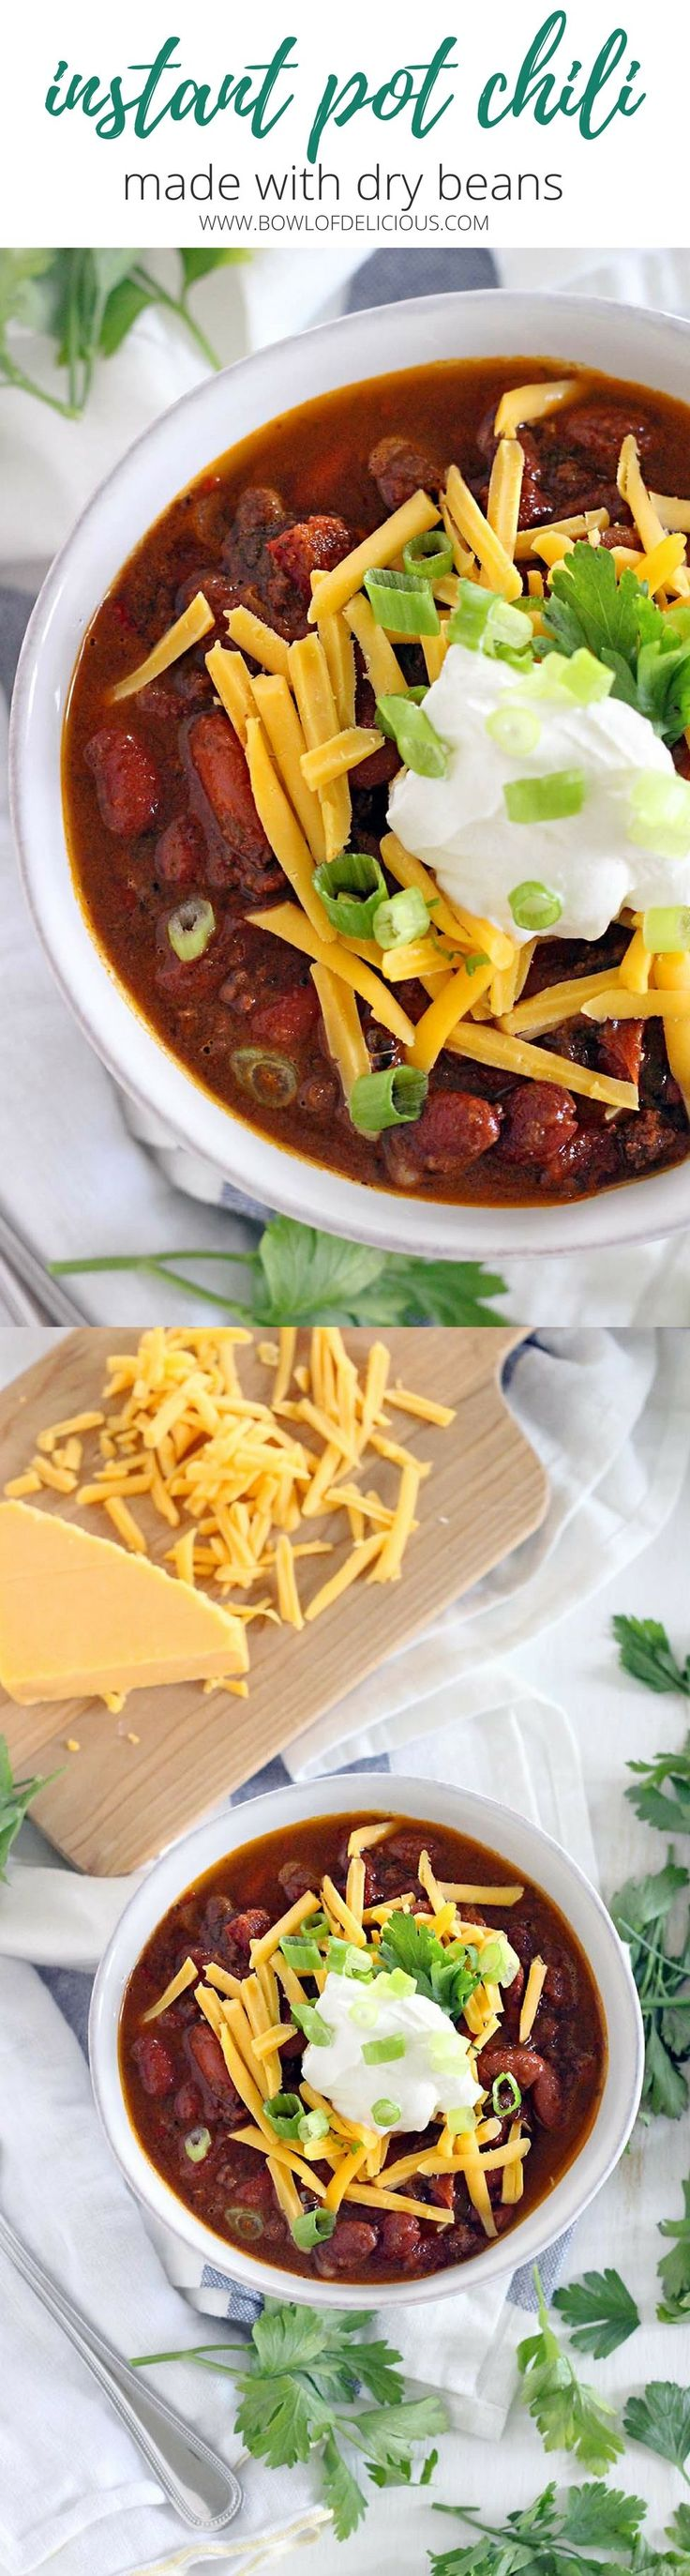 This Instant Pot Chili is made with ground beef and dry kidney beans, and comes together in less than an hour! It's cheap, healthy, and DELICIOUS. #instantpot #crockpot #sponsored by @USAPulses and @PulseCanada